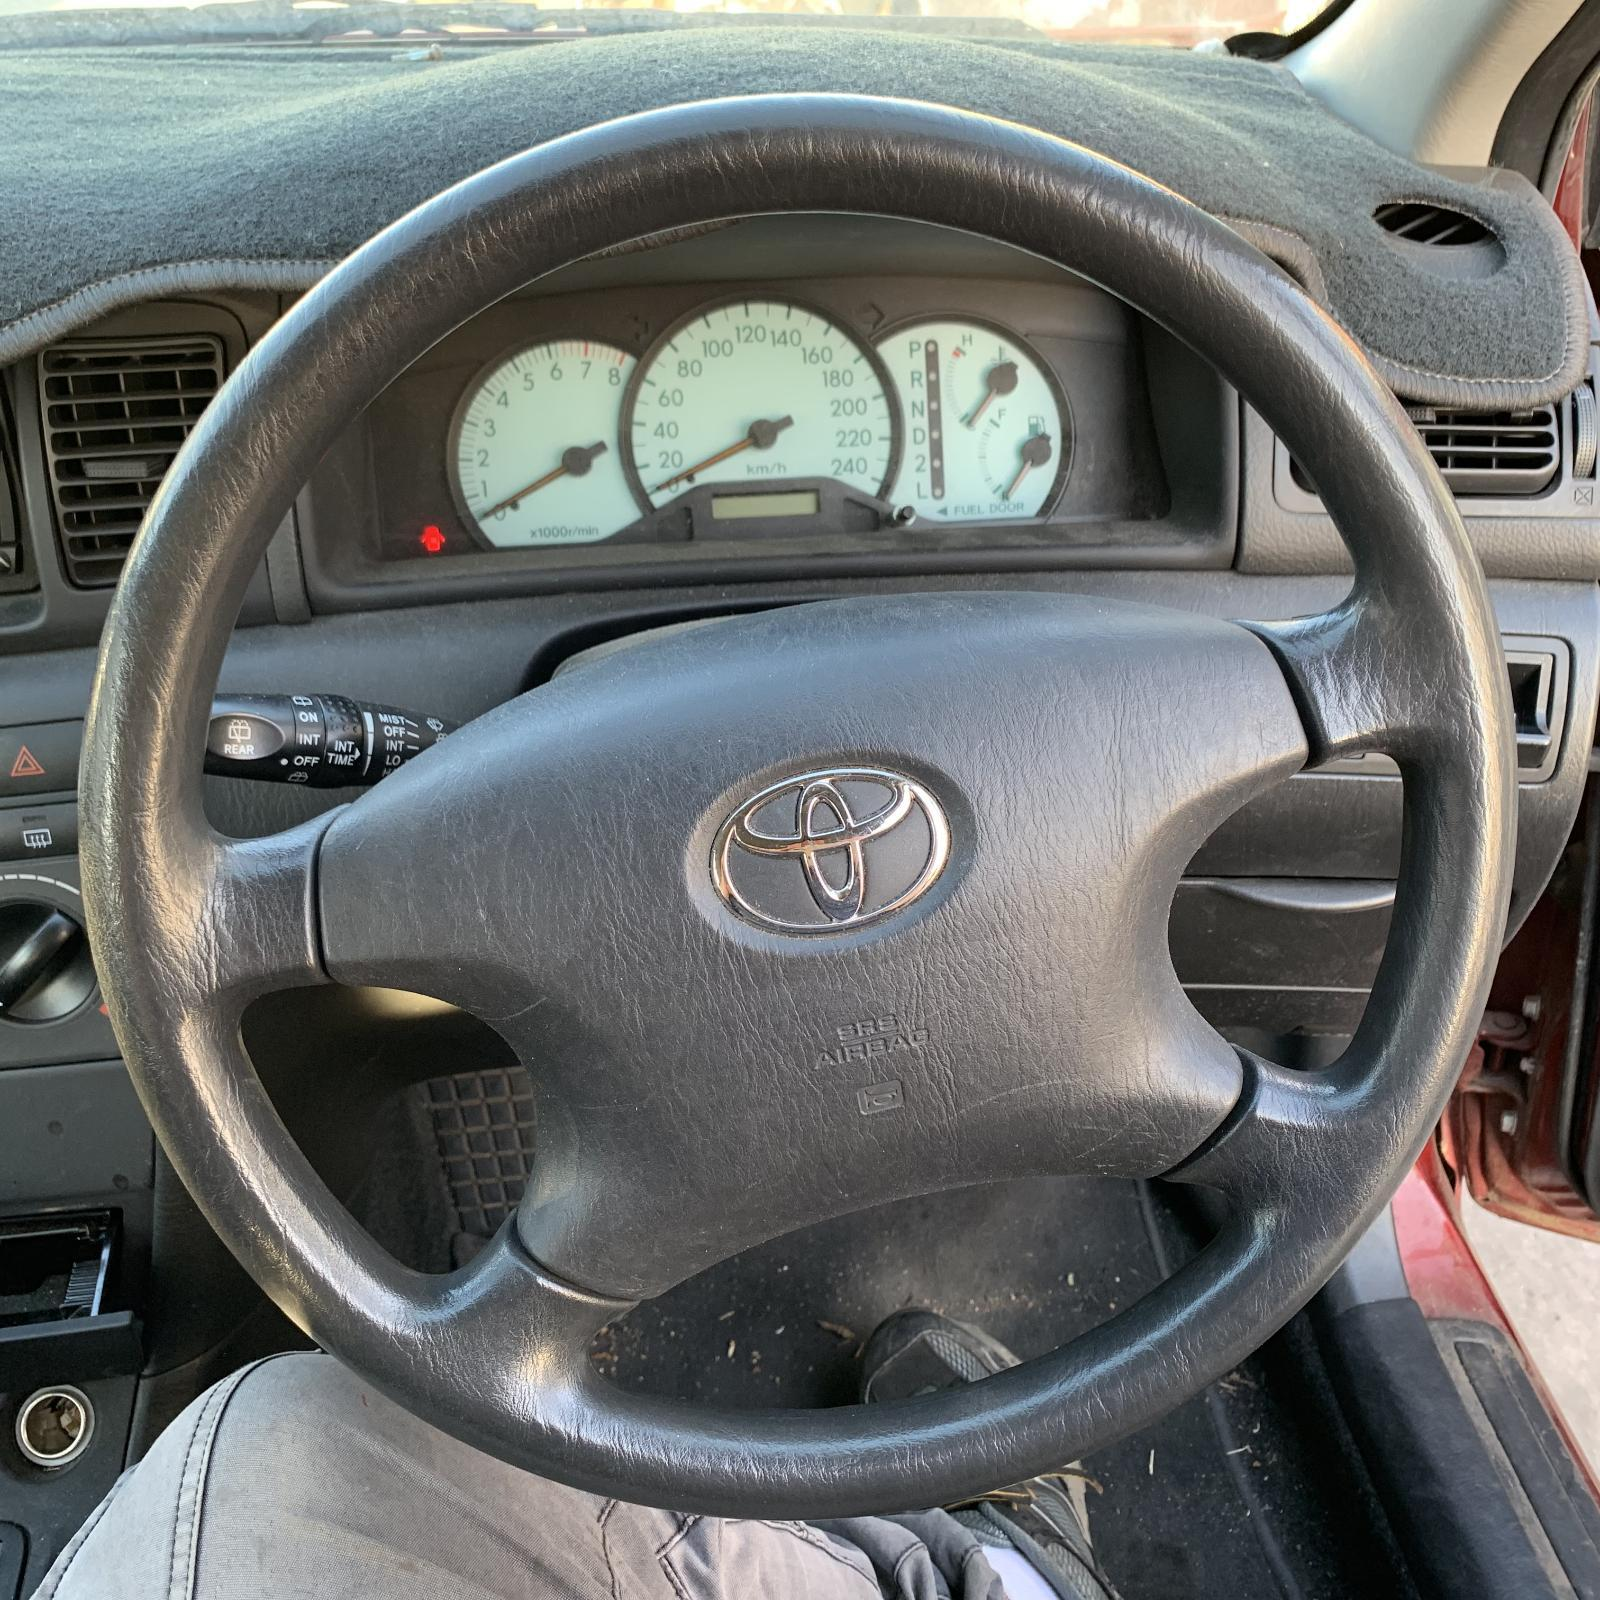 TOYOTA COROLLA, Steering Wheel, ZZE122, 4 SPOKE TYPE, 12/01-06/07